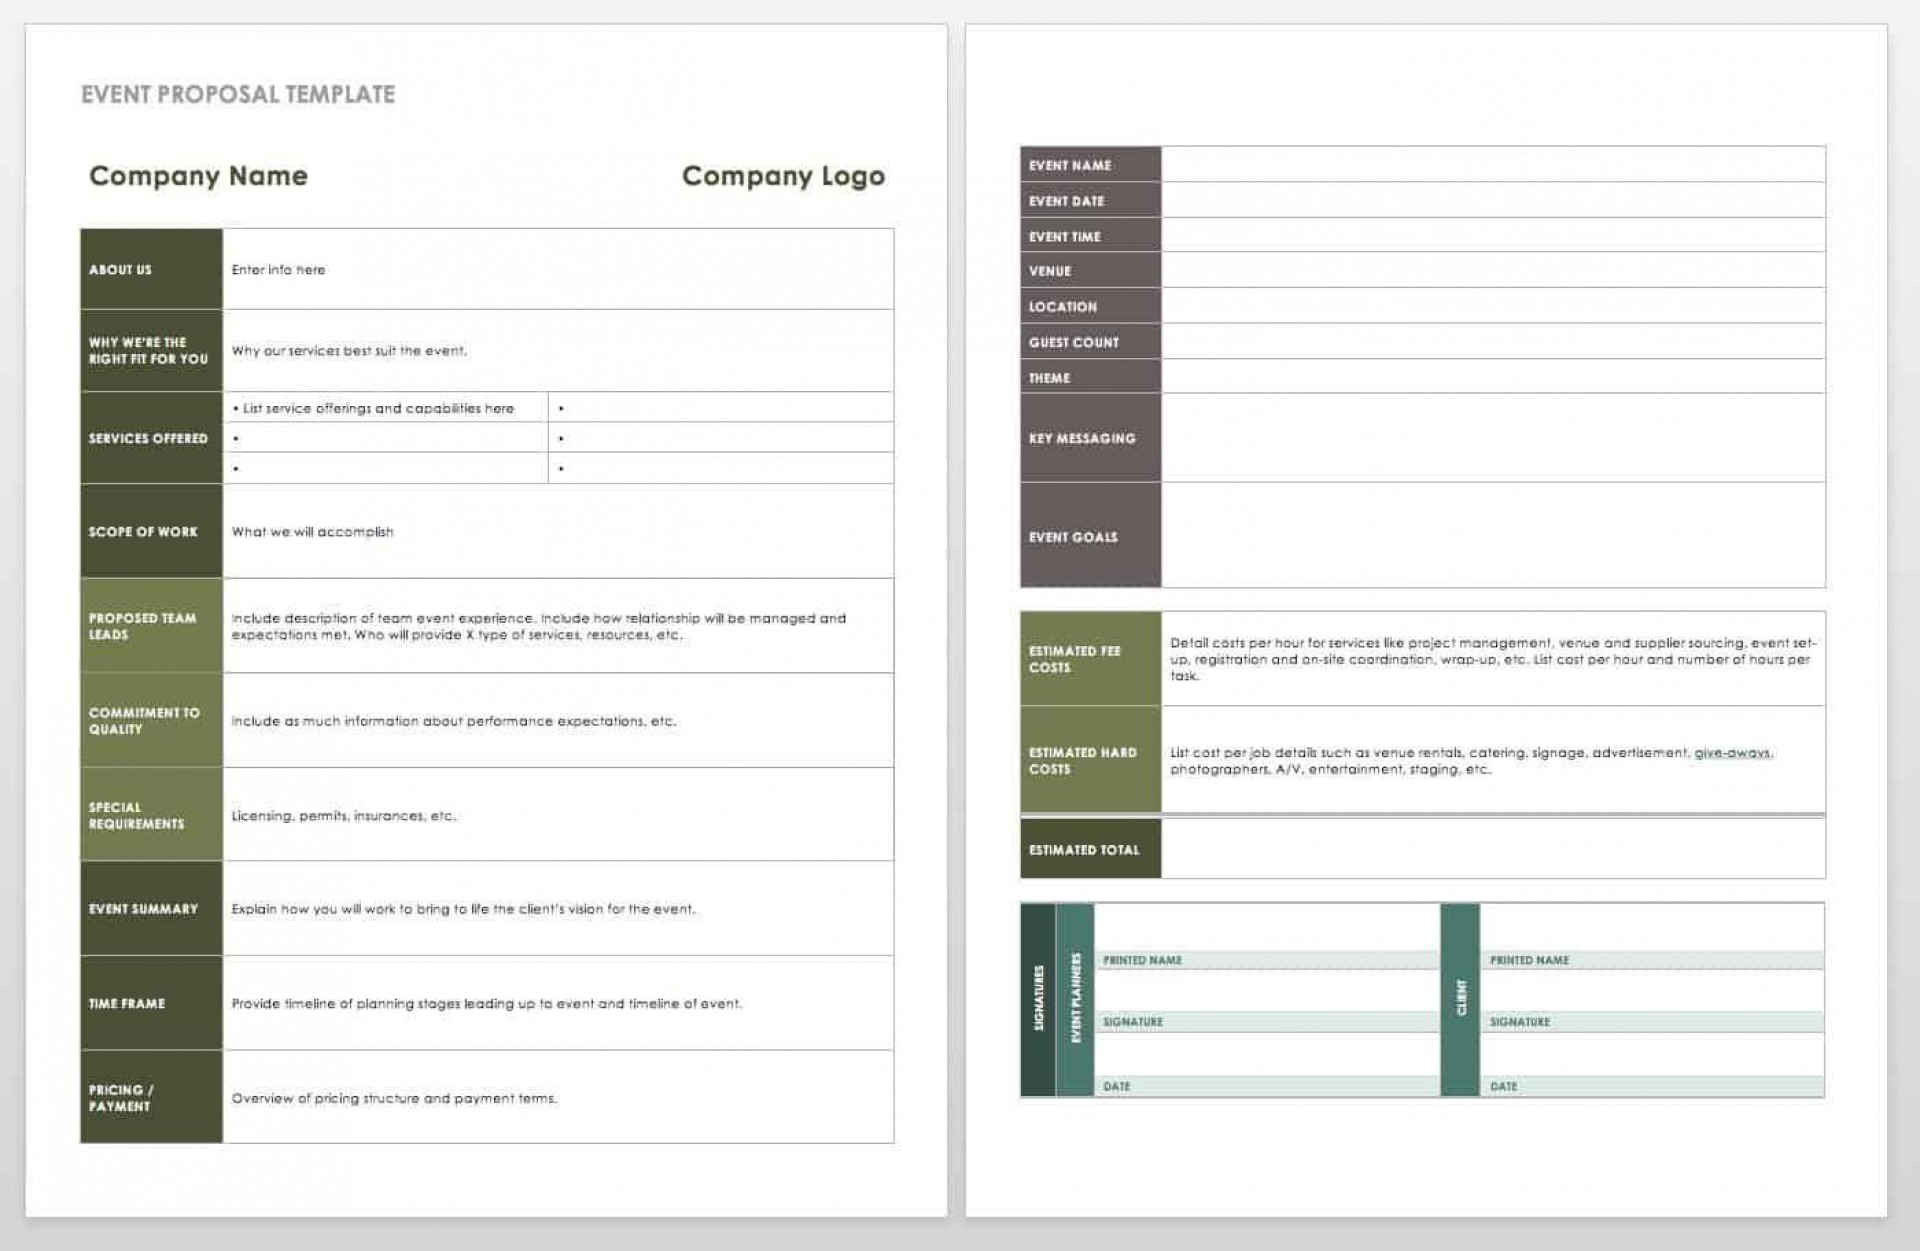 006 Imposing Free Event Planner Checklist Template High Definition  Planning Party1920